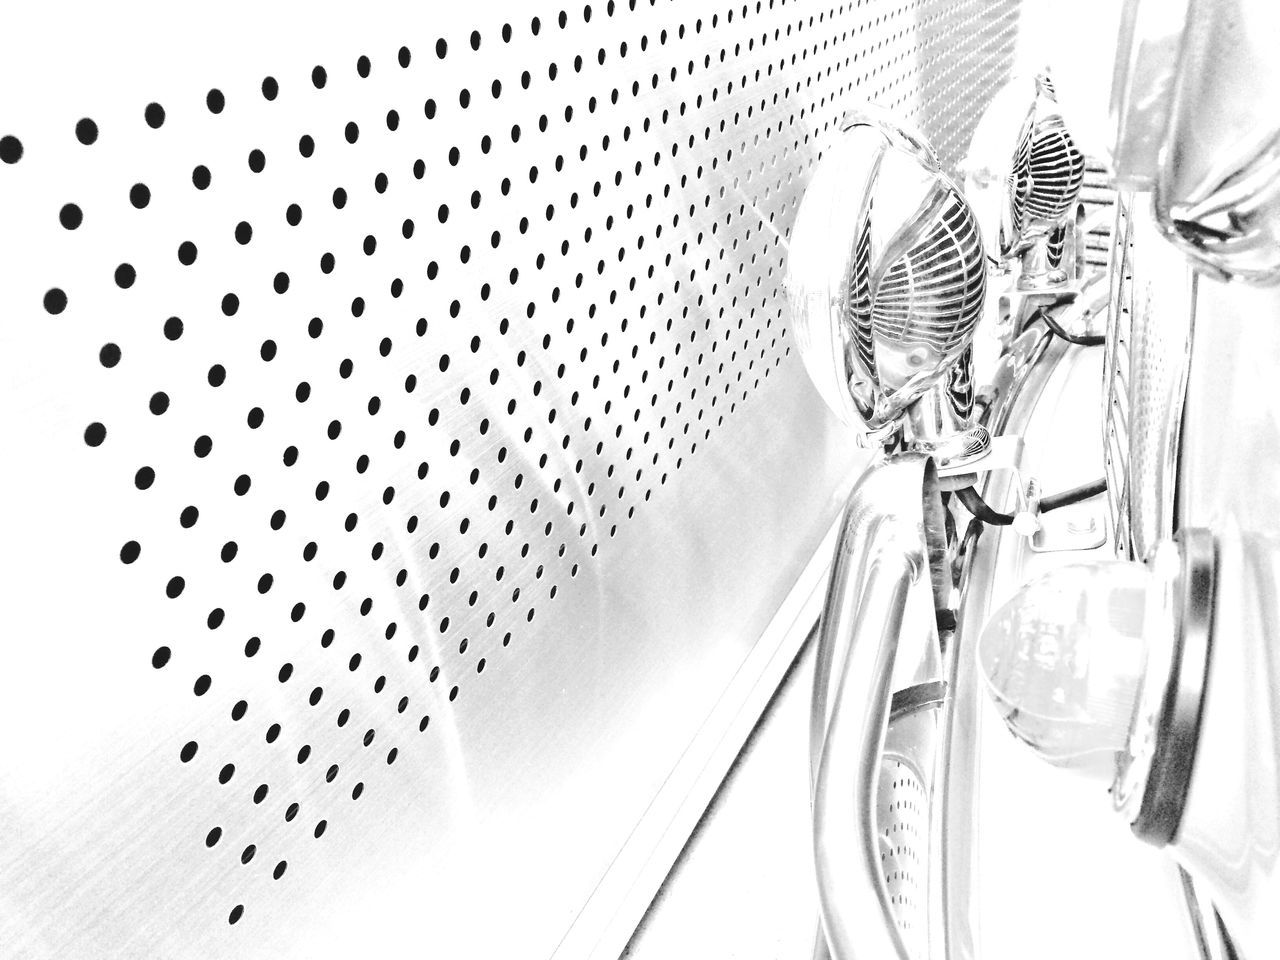 metal, no people, silver colored, silver - metal, close-up, indoors, day